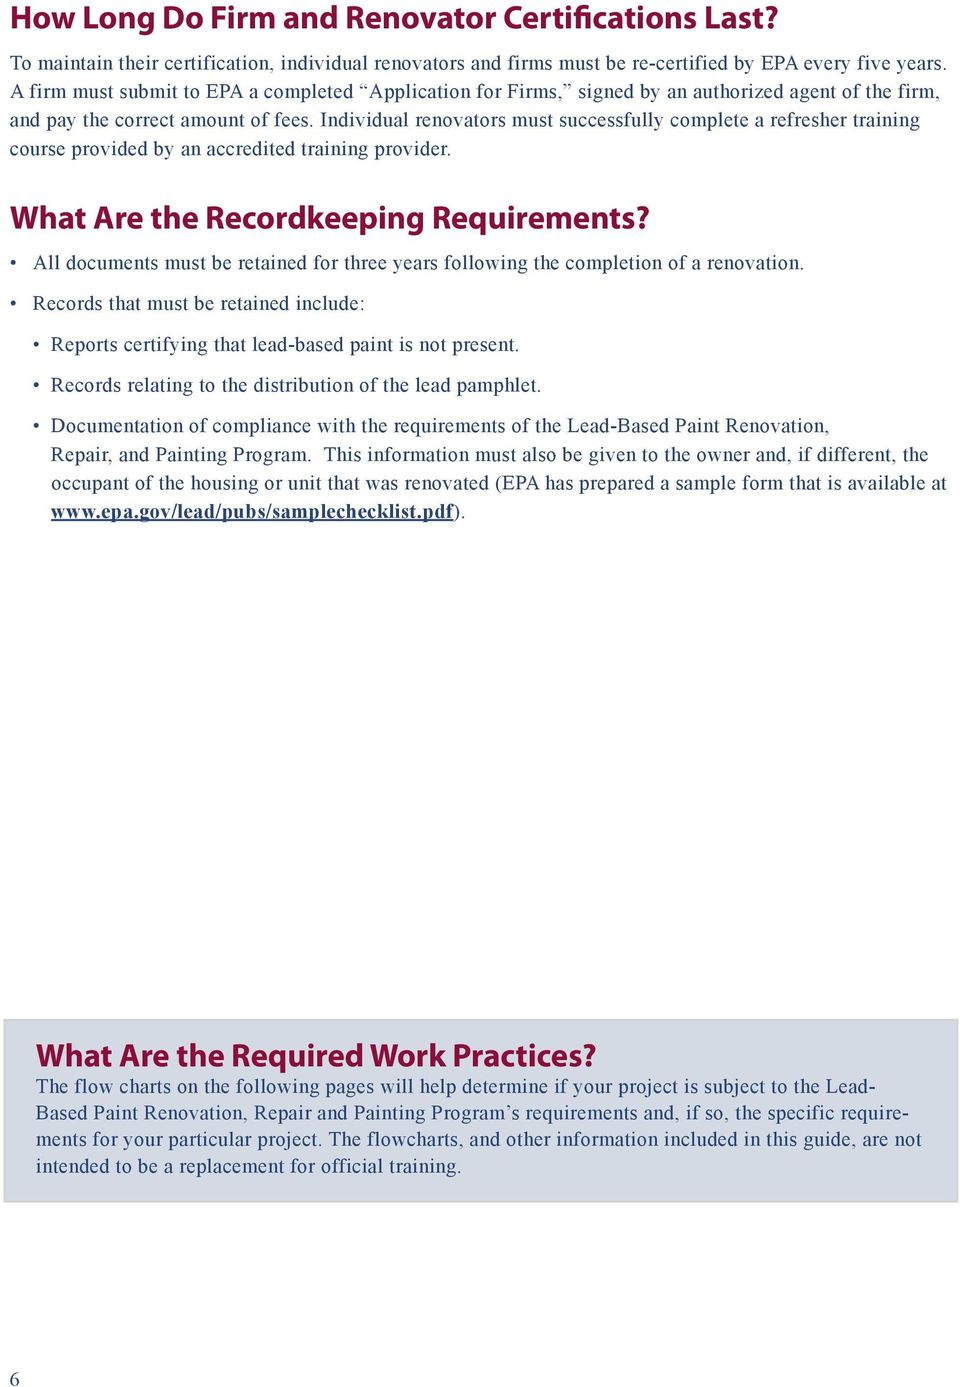 Individual renovators must successfully complete a refresher training course provided by an accredited training provider. What Are the Recordkeeping Requirements?